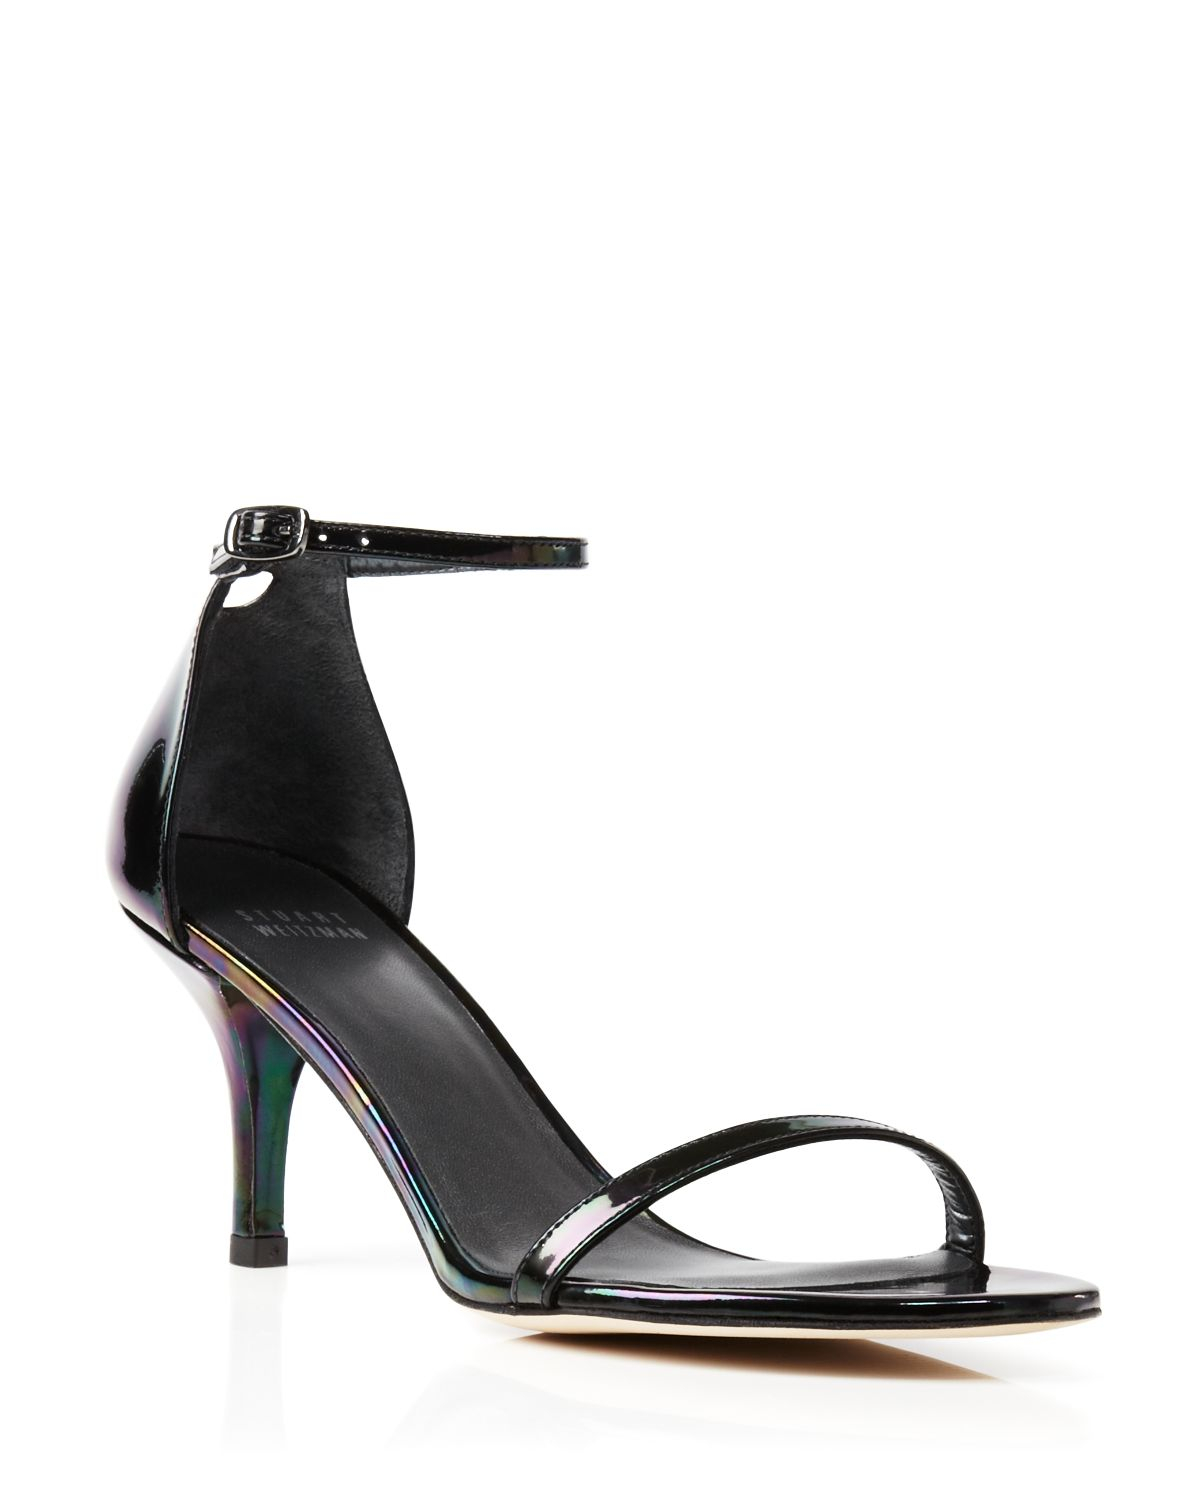 Stuart weitzman Ankle Strap Sandals - Naked Mid Heel in Black | Lyst